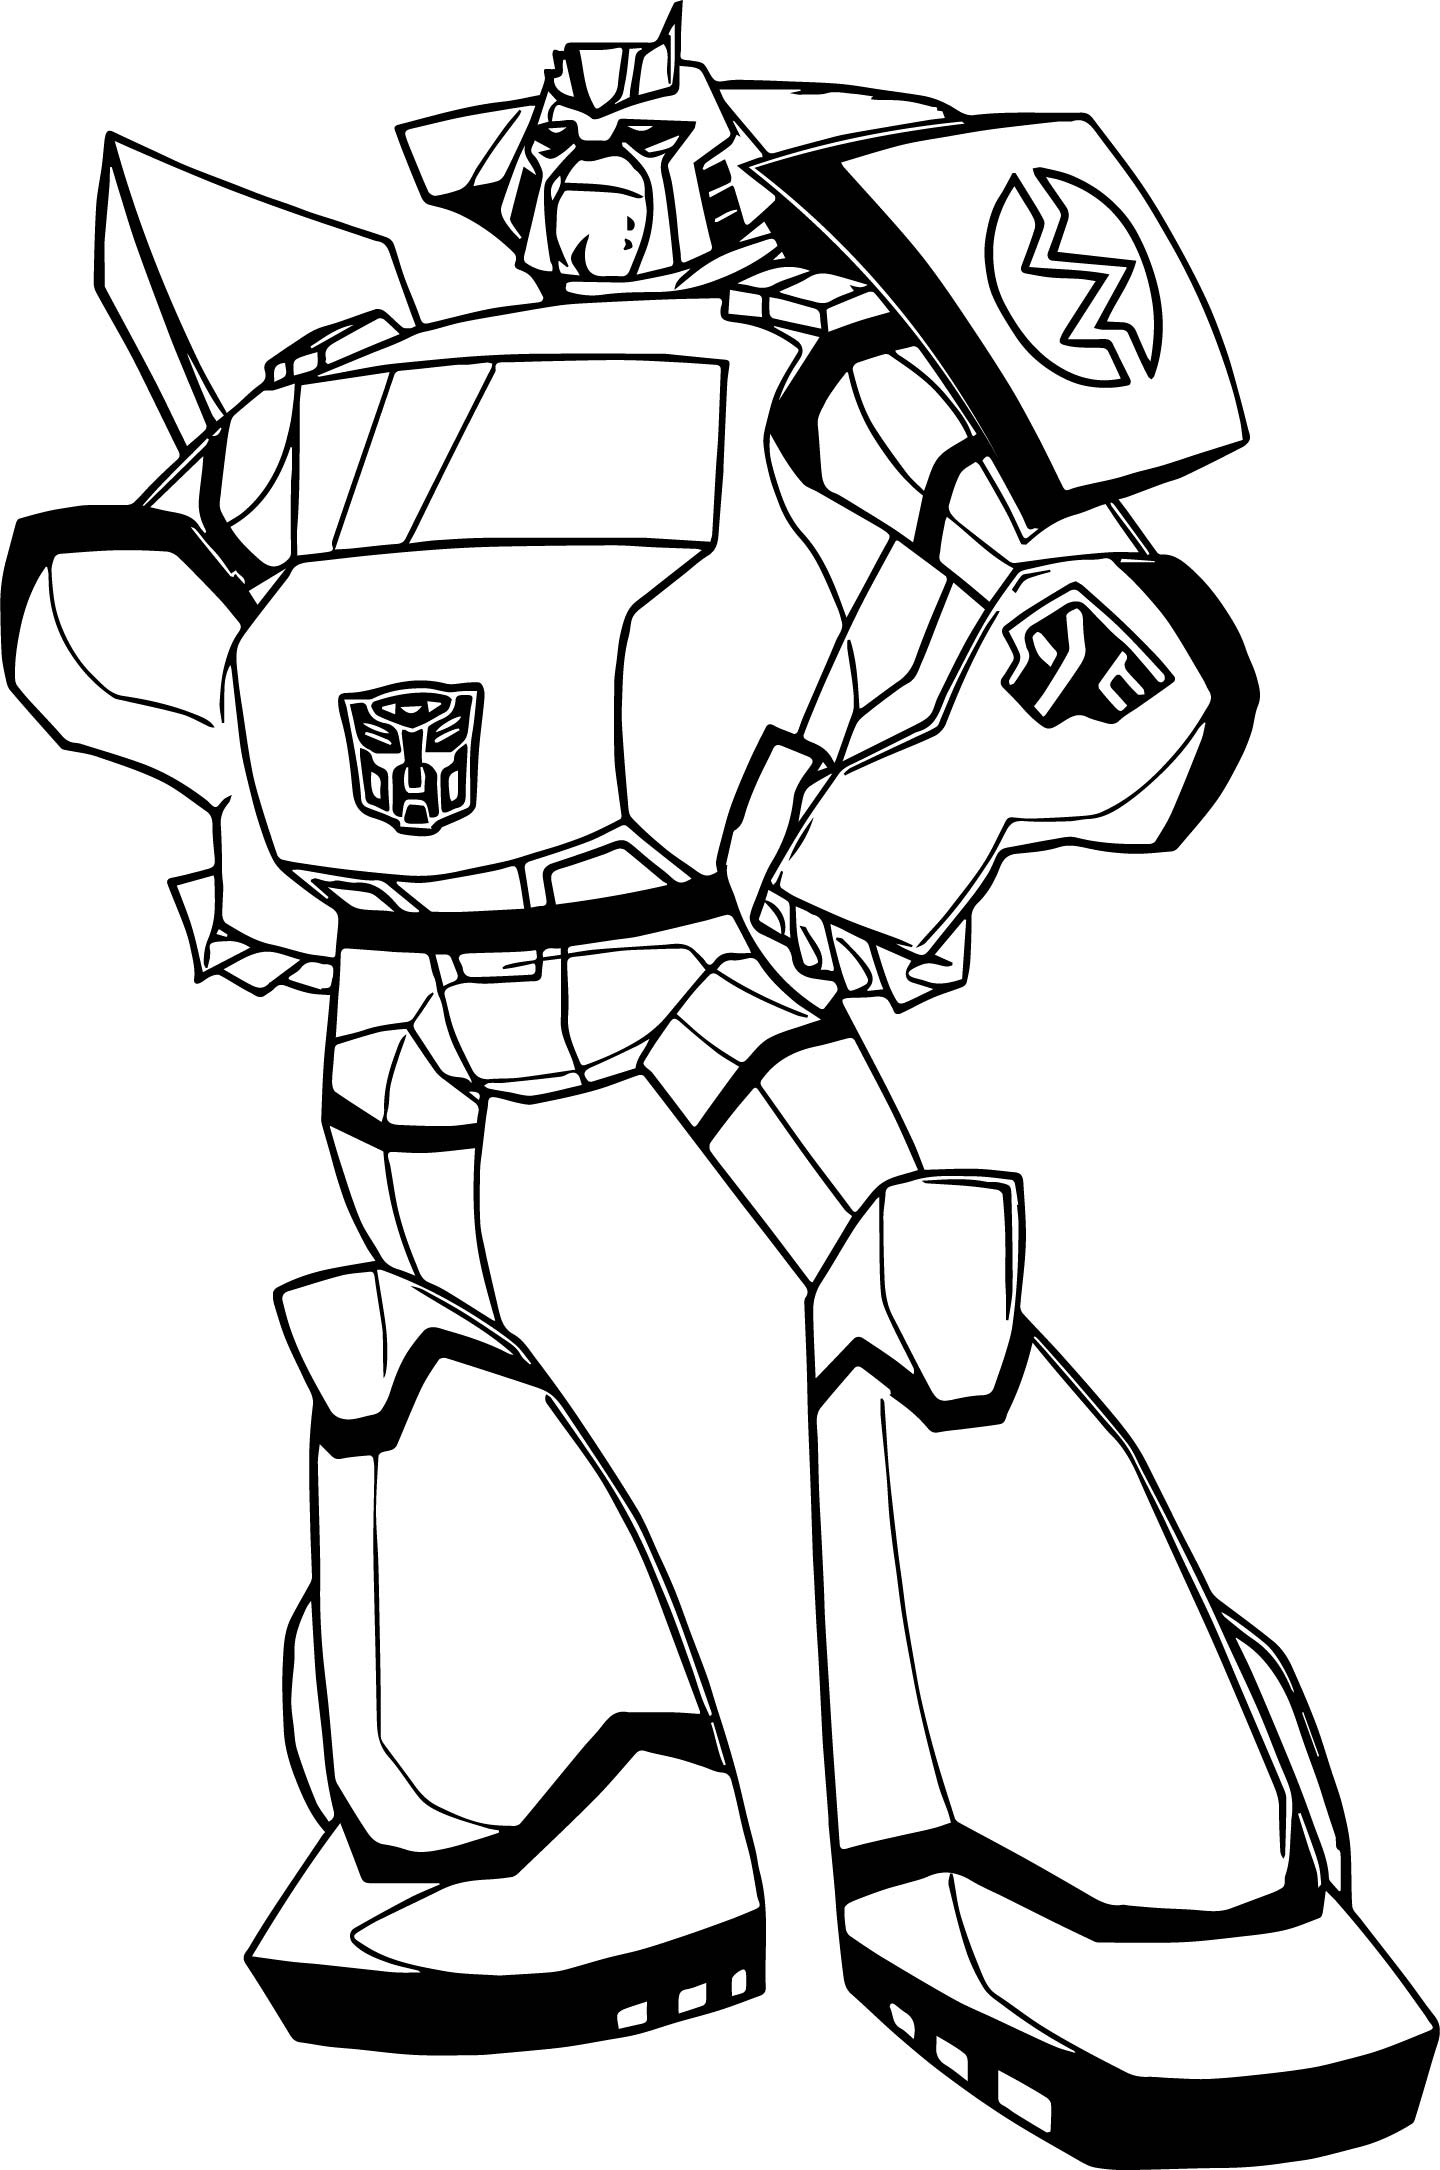 Fat transformers coloring page for Transformers animated coloring pages